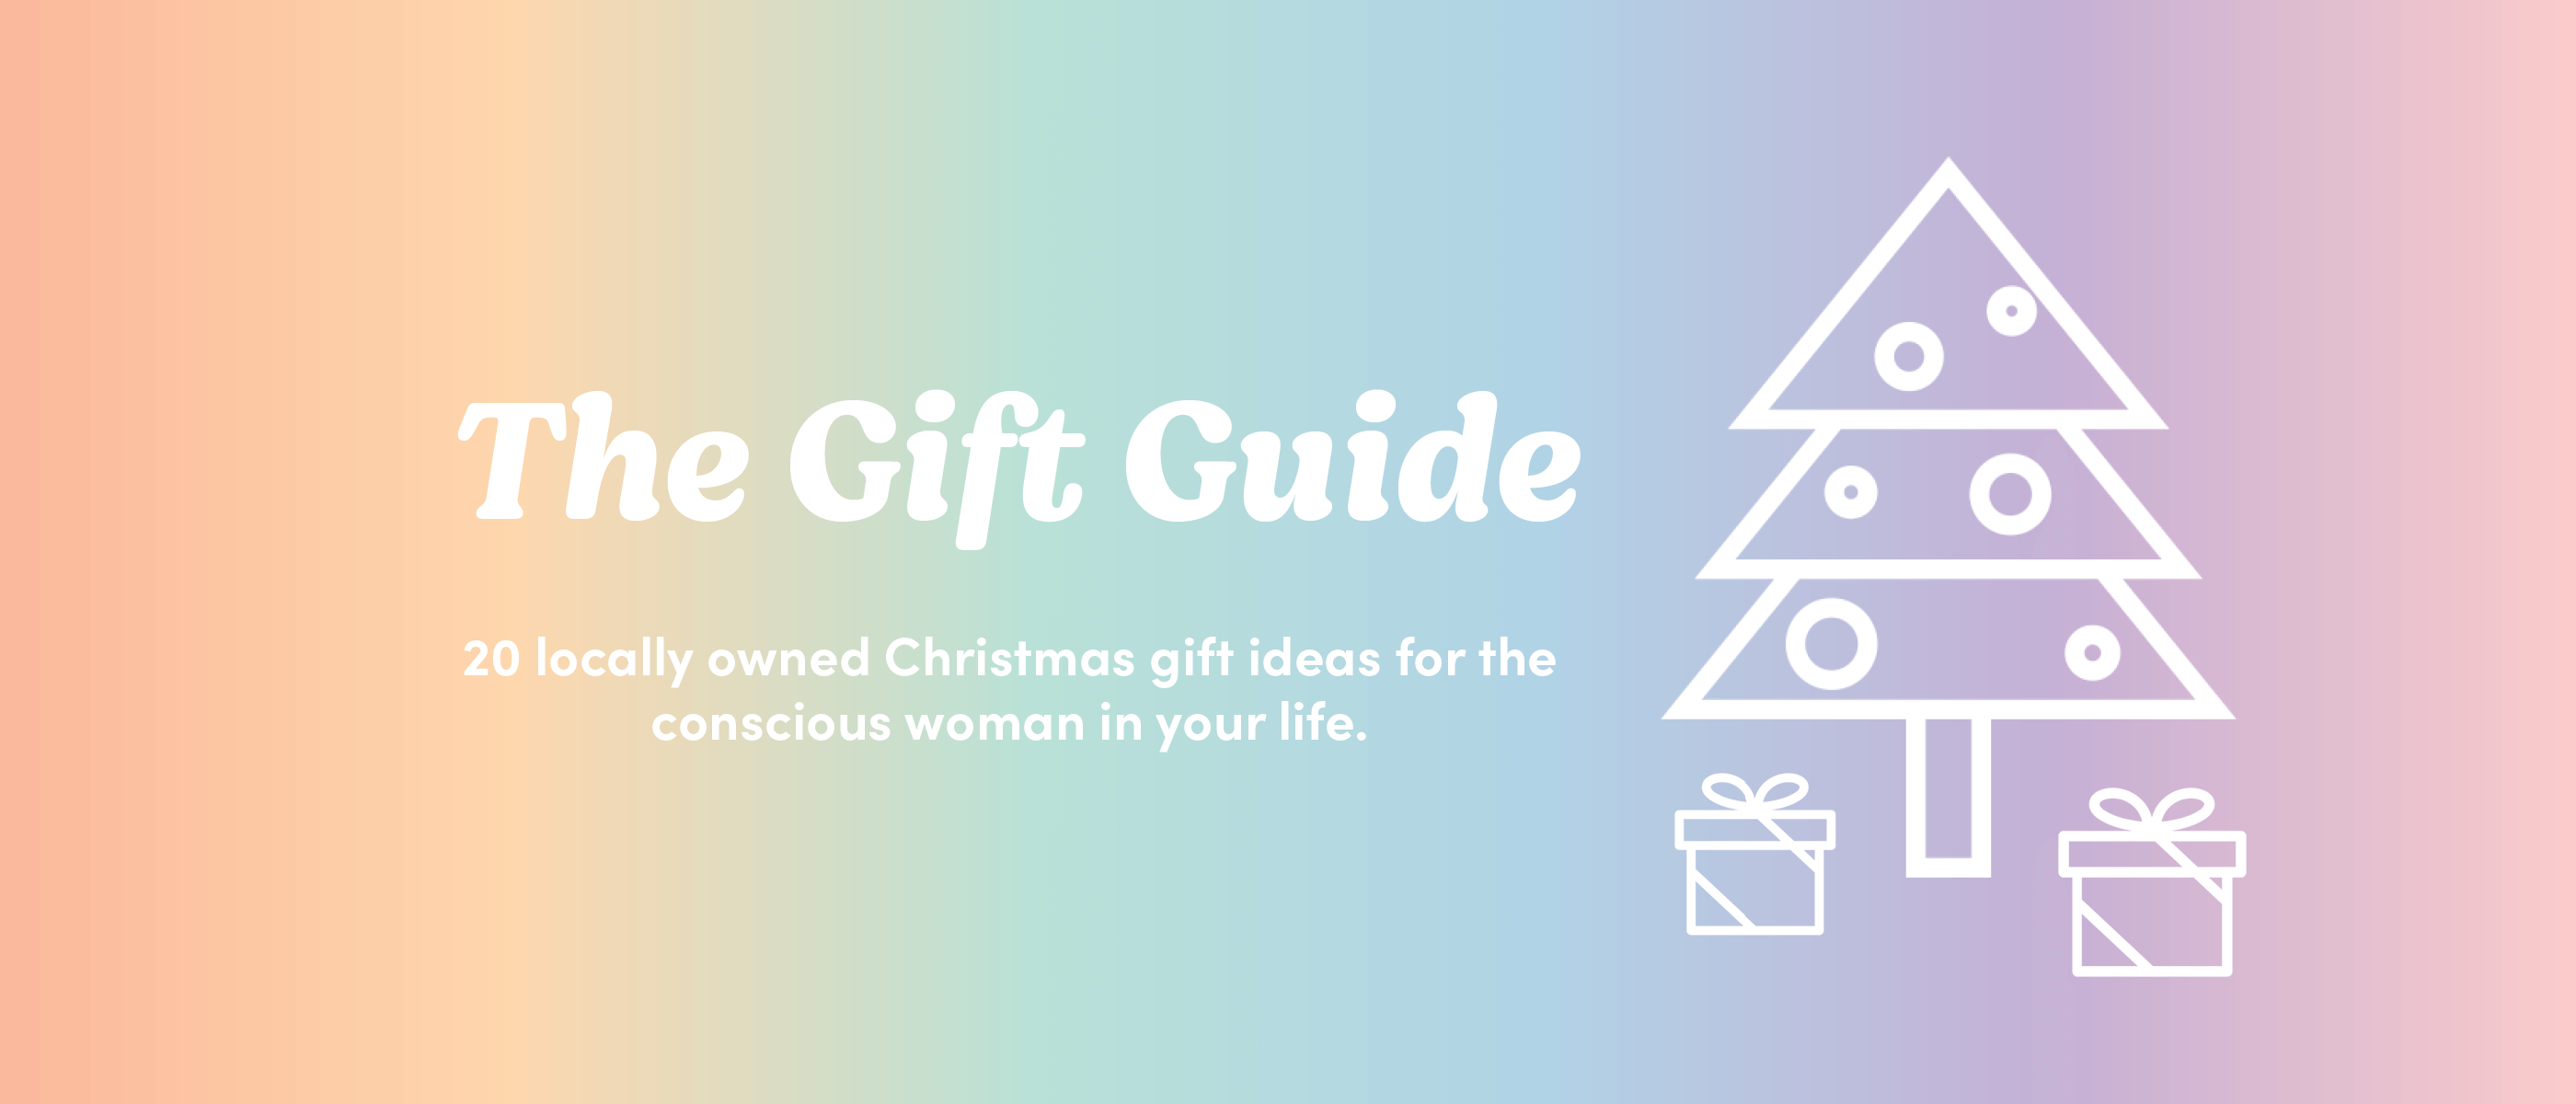 Eve's Christmas Gift Guide